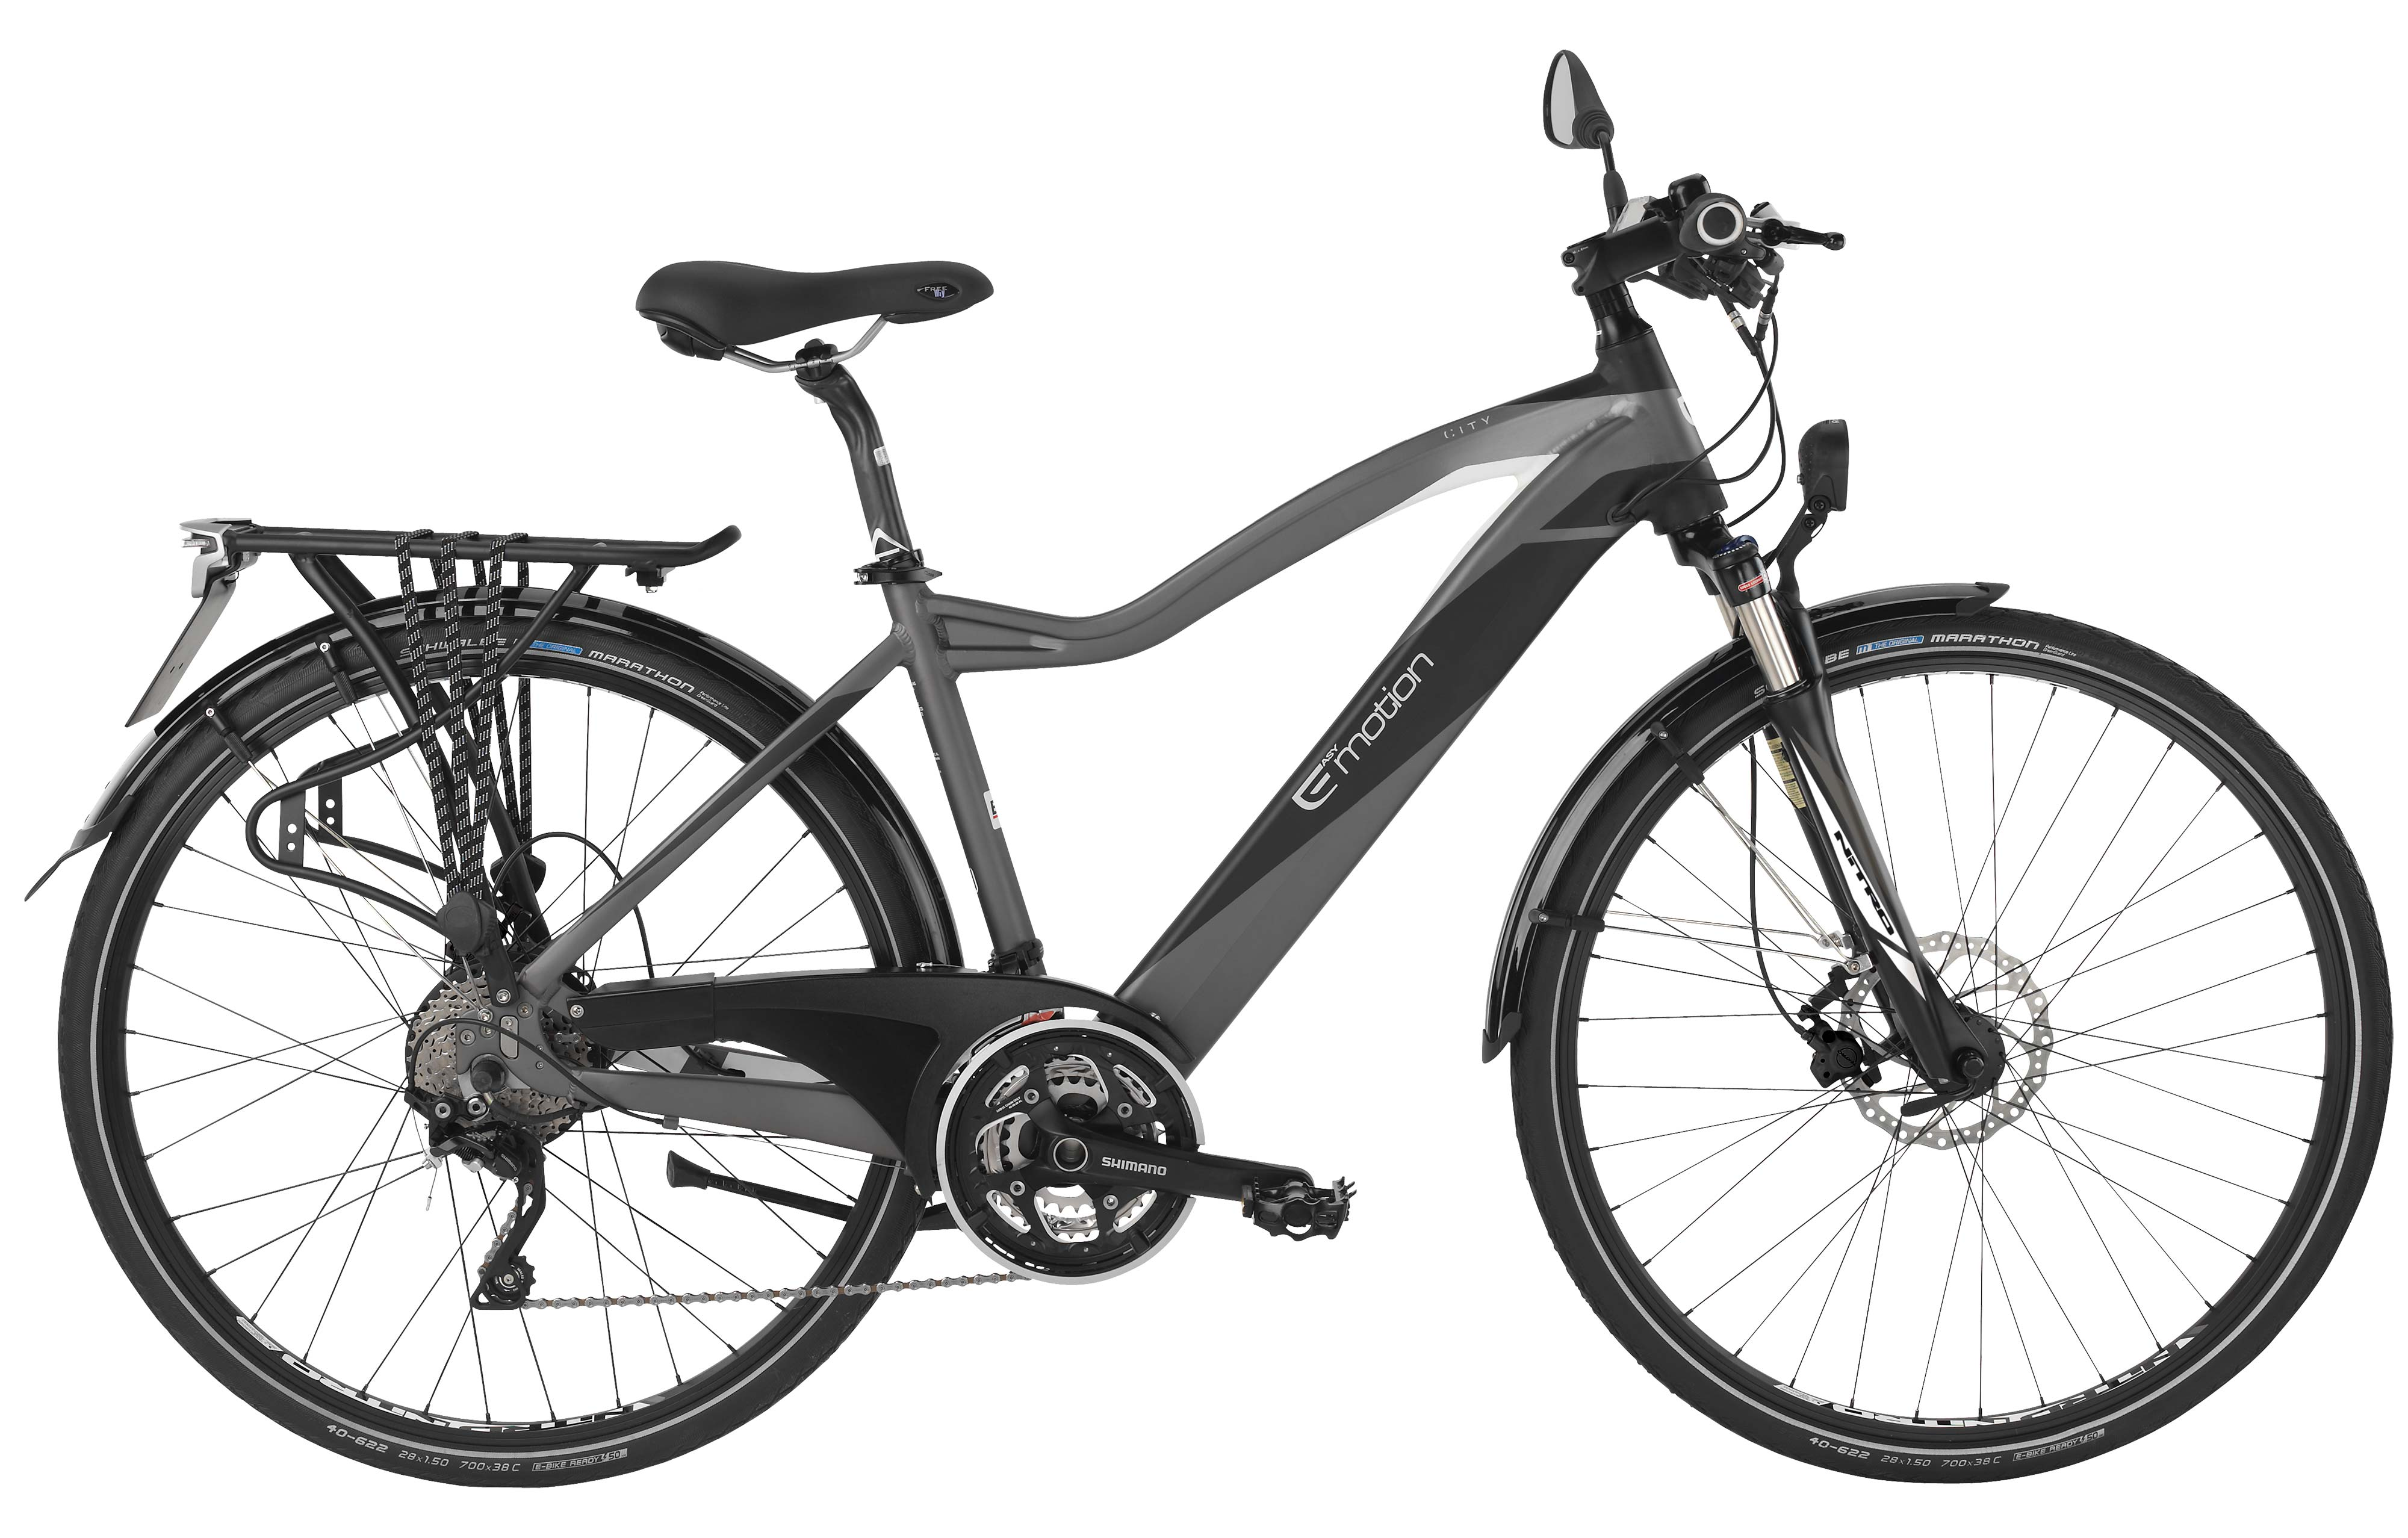 bh bikes adds remote gps tracker to e bikes bikerumor. Black Bedroom Furniture Sets. Home Design Ideas